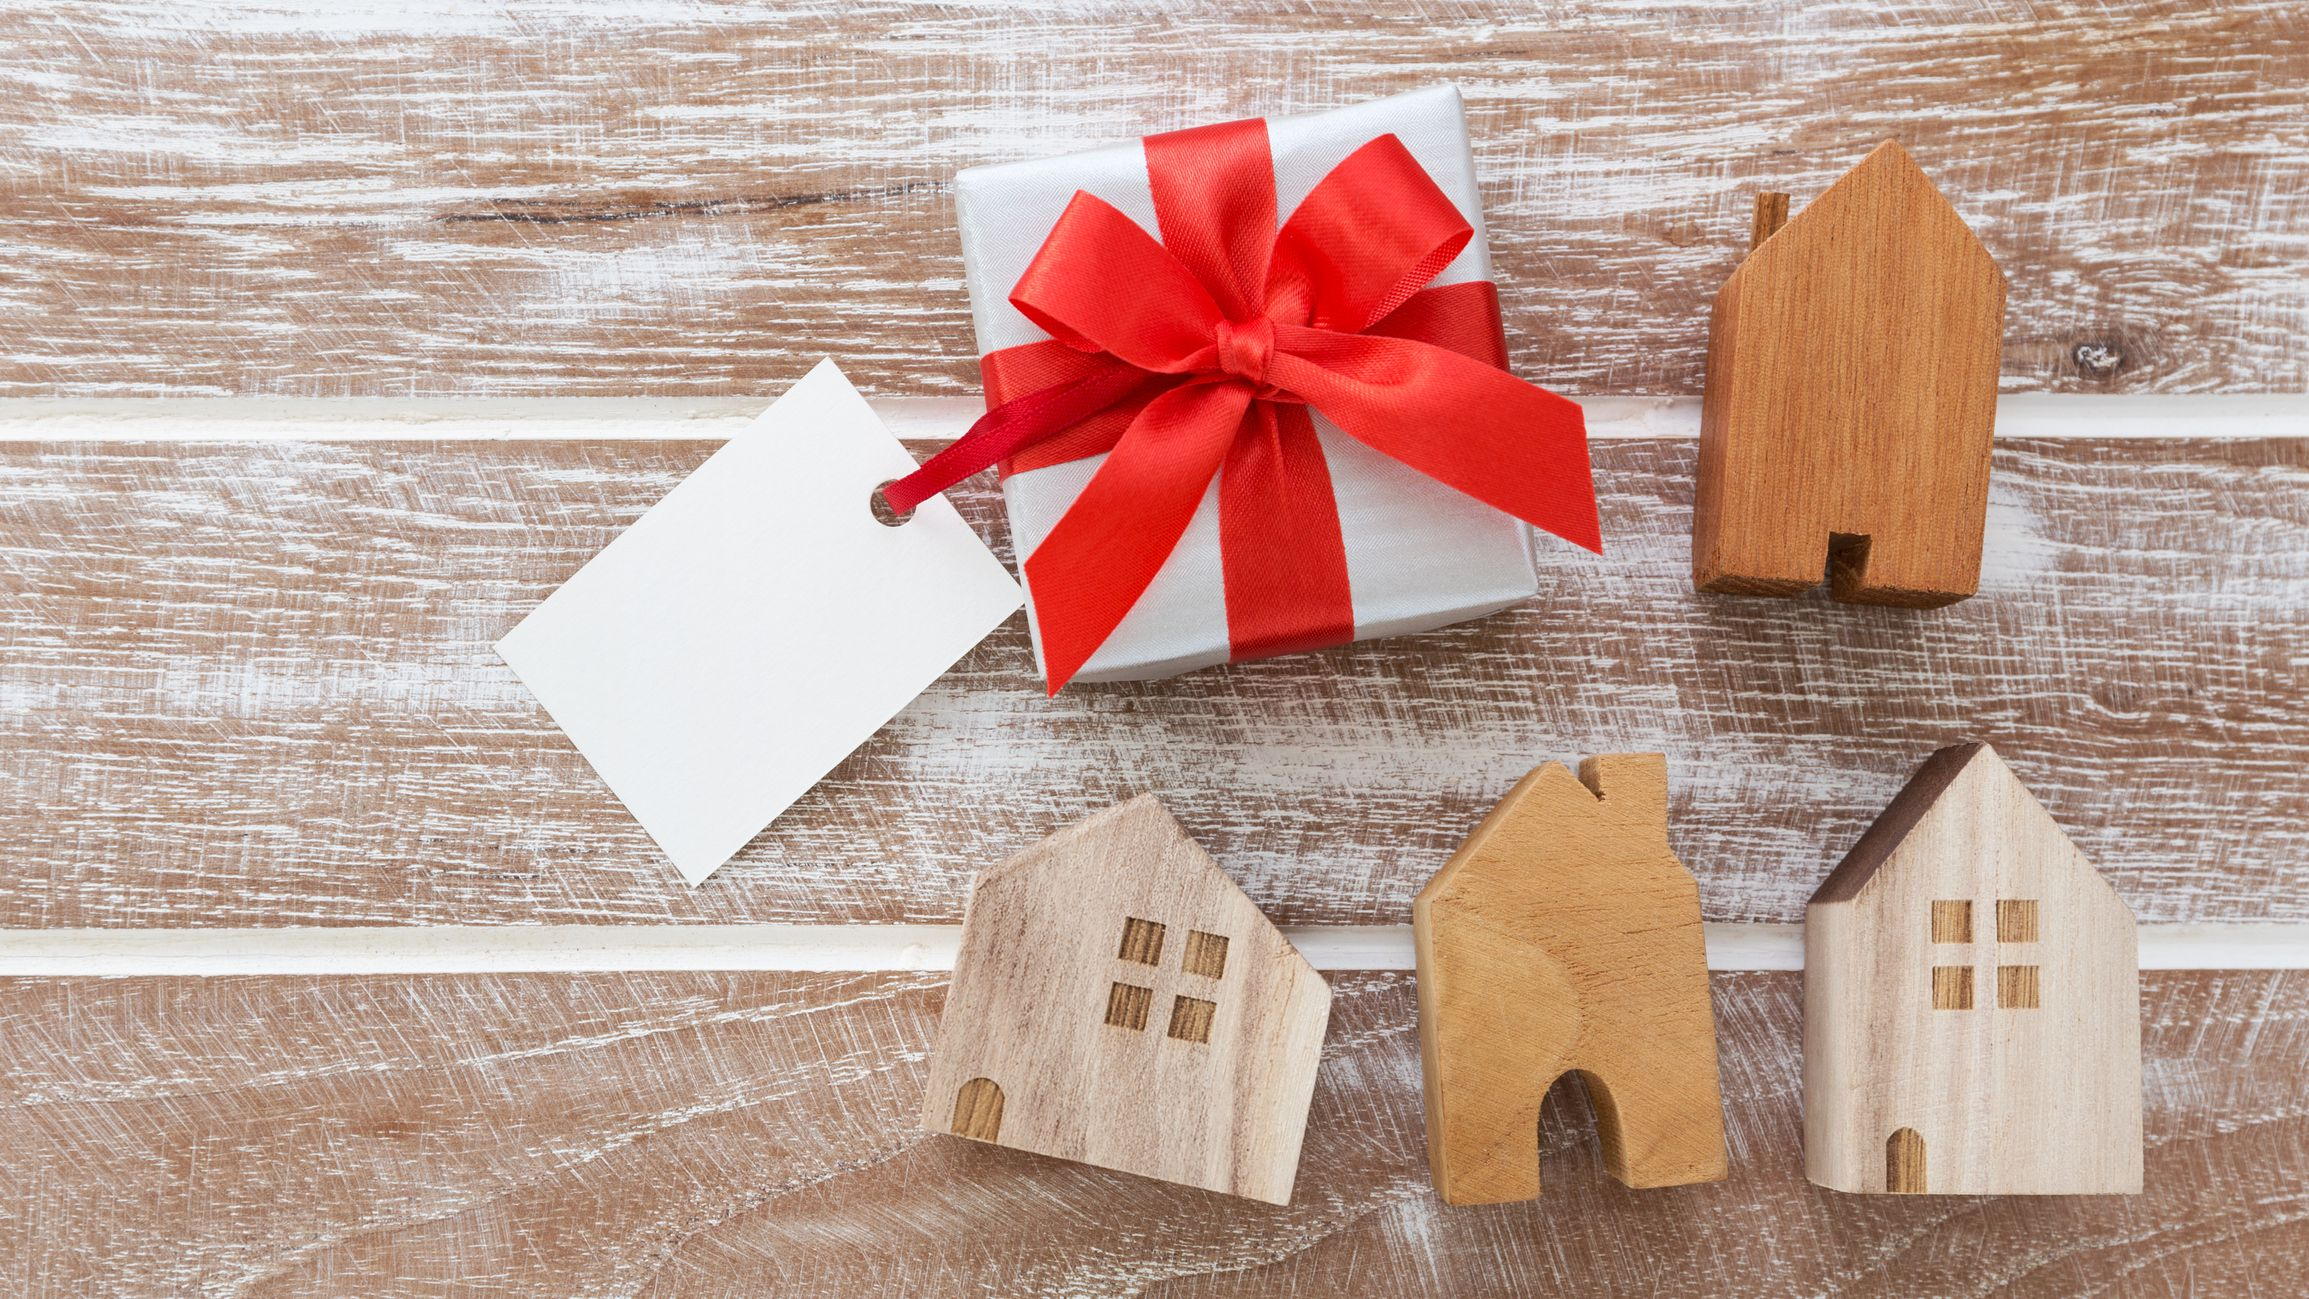 form 1040 gift received  What Specific Gifts Are Not Subject to the Gift Tax?